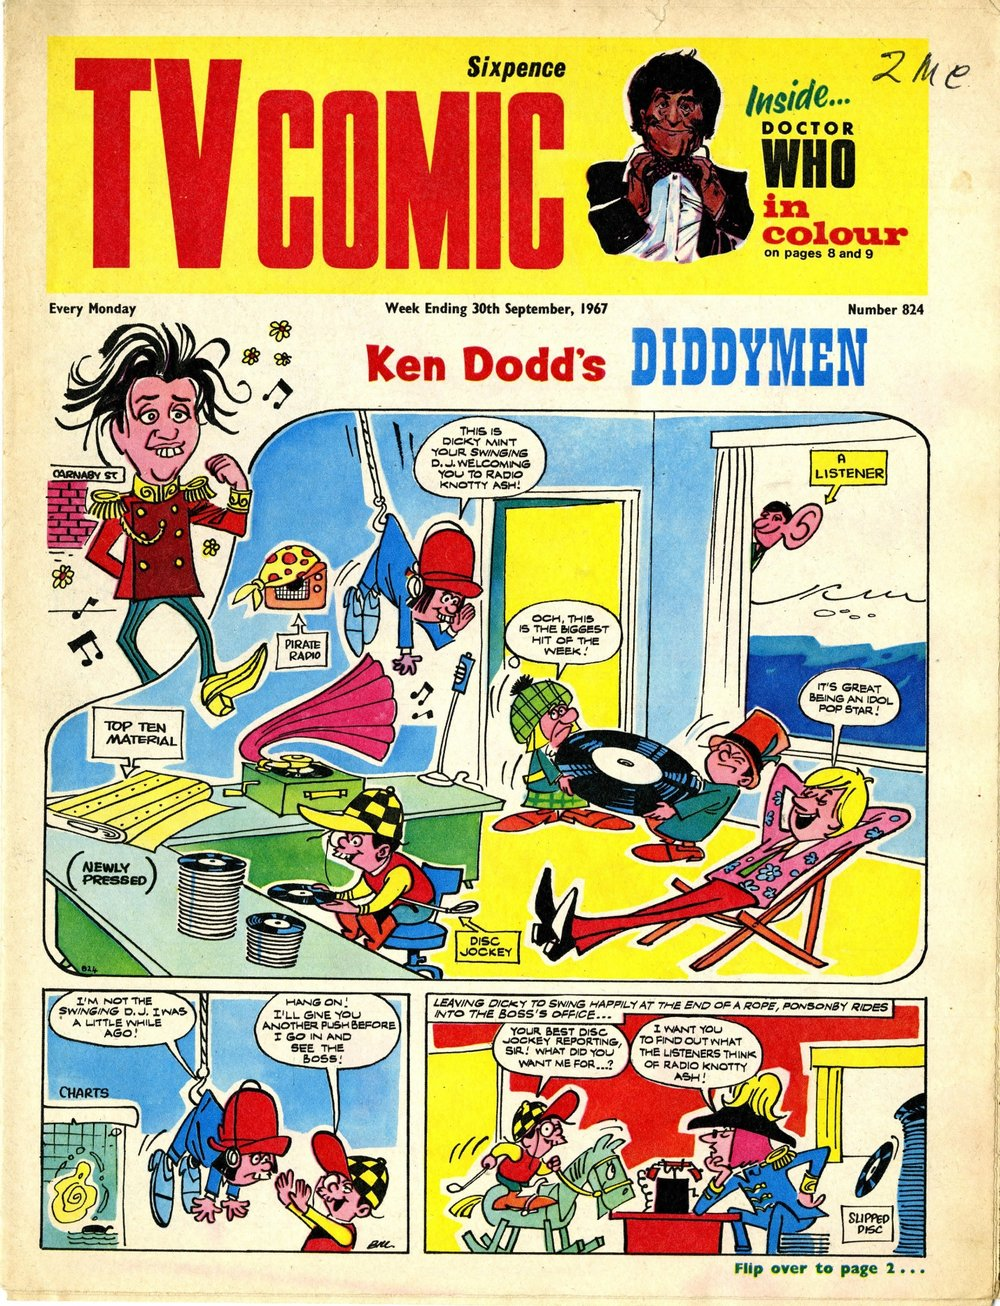 TV Comic number 824, 30 September 1967